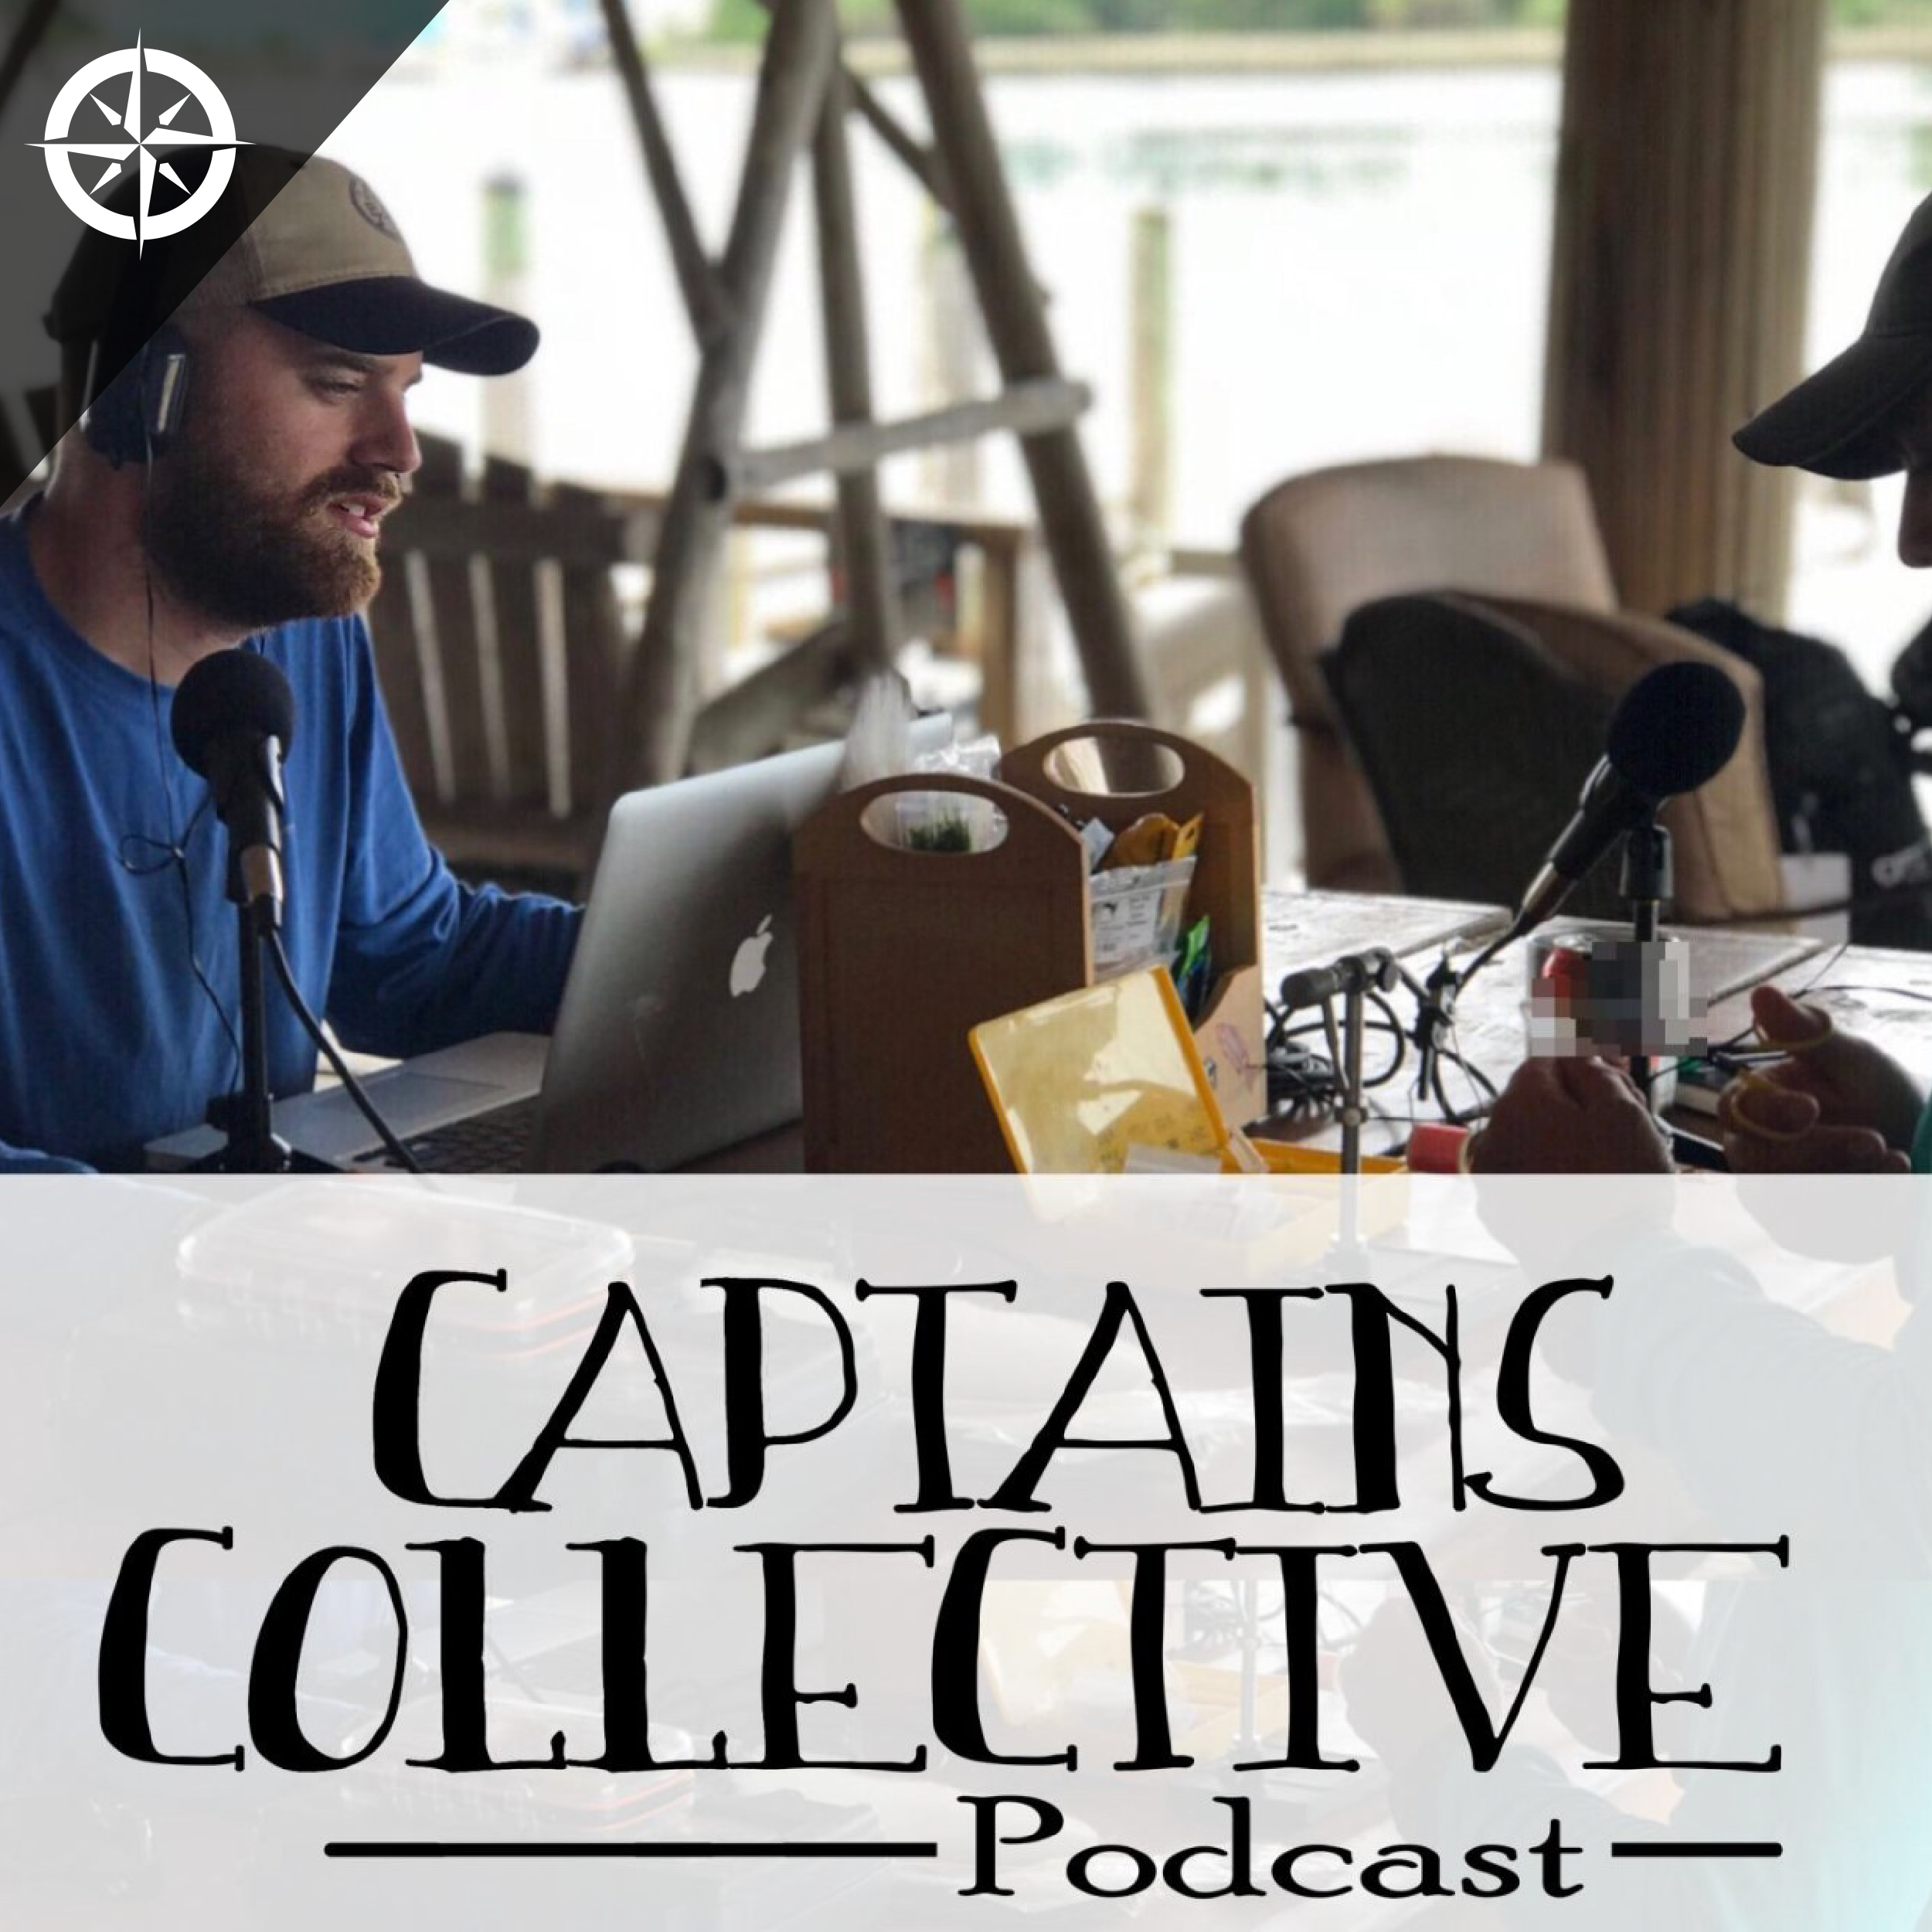 Captains Collective Fishing Podcast show art